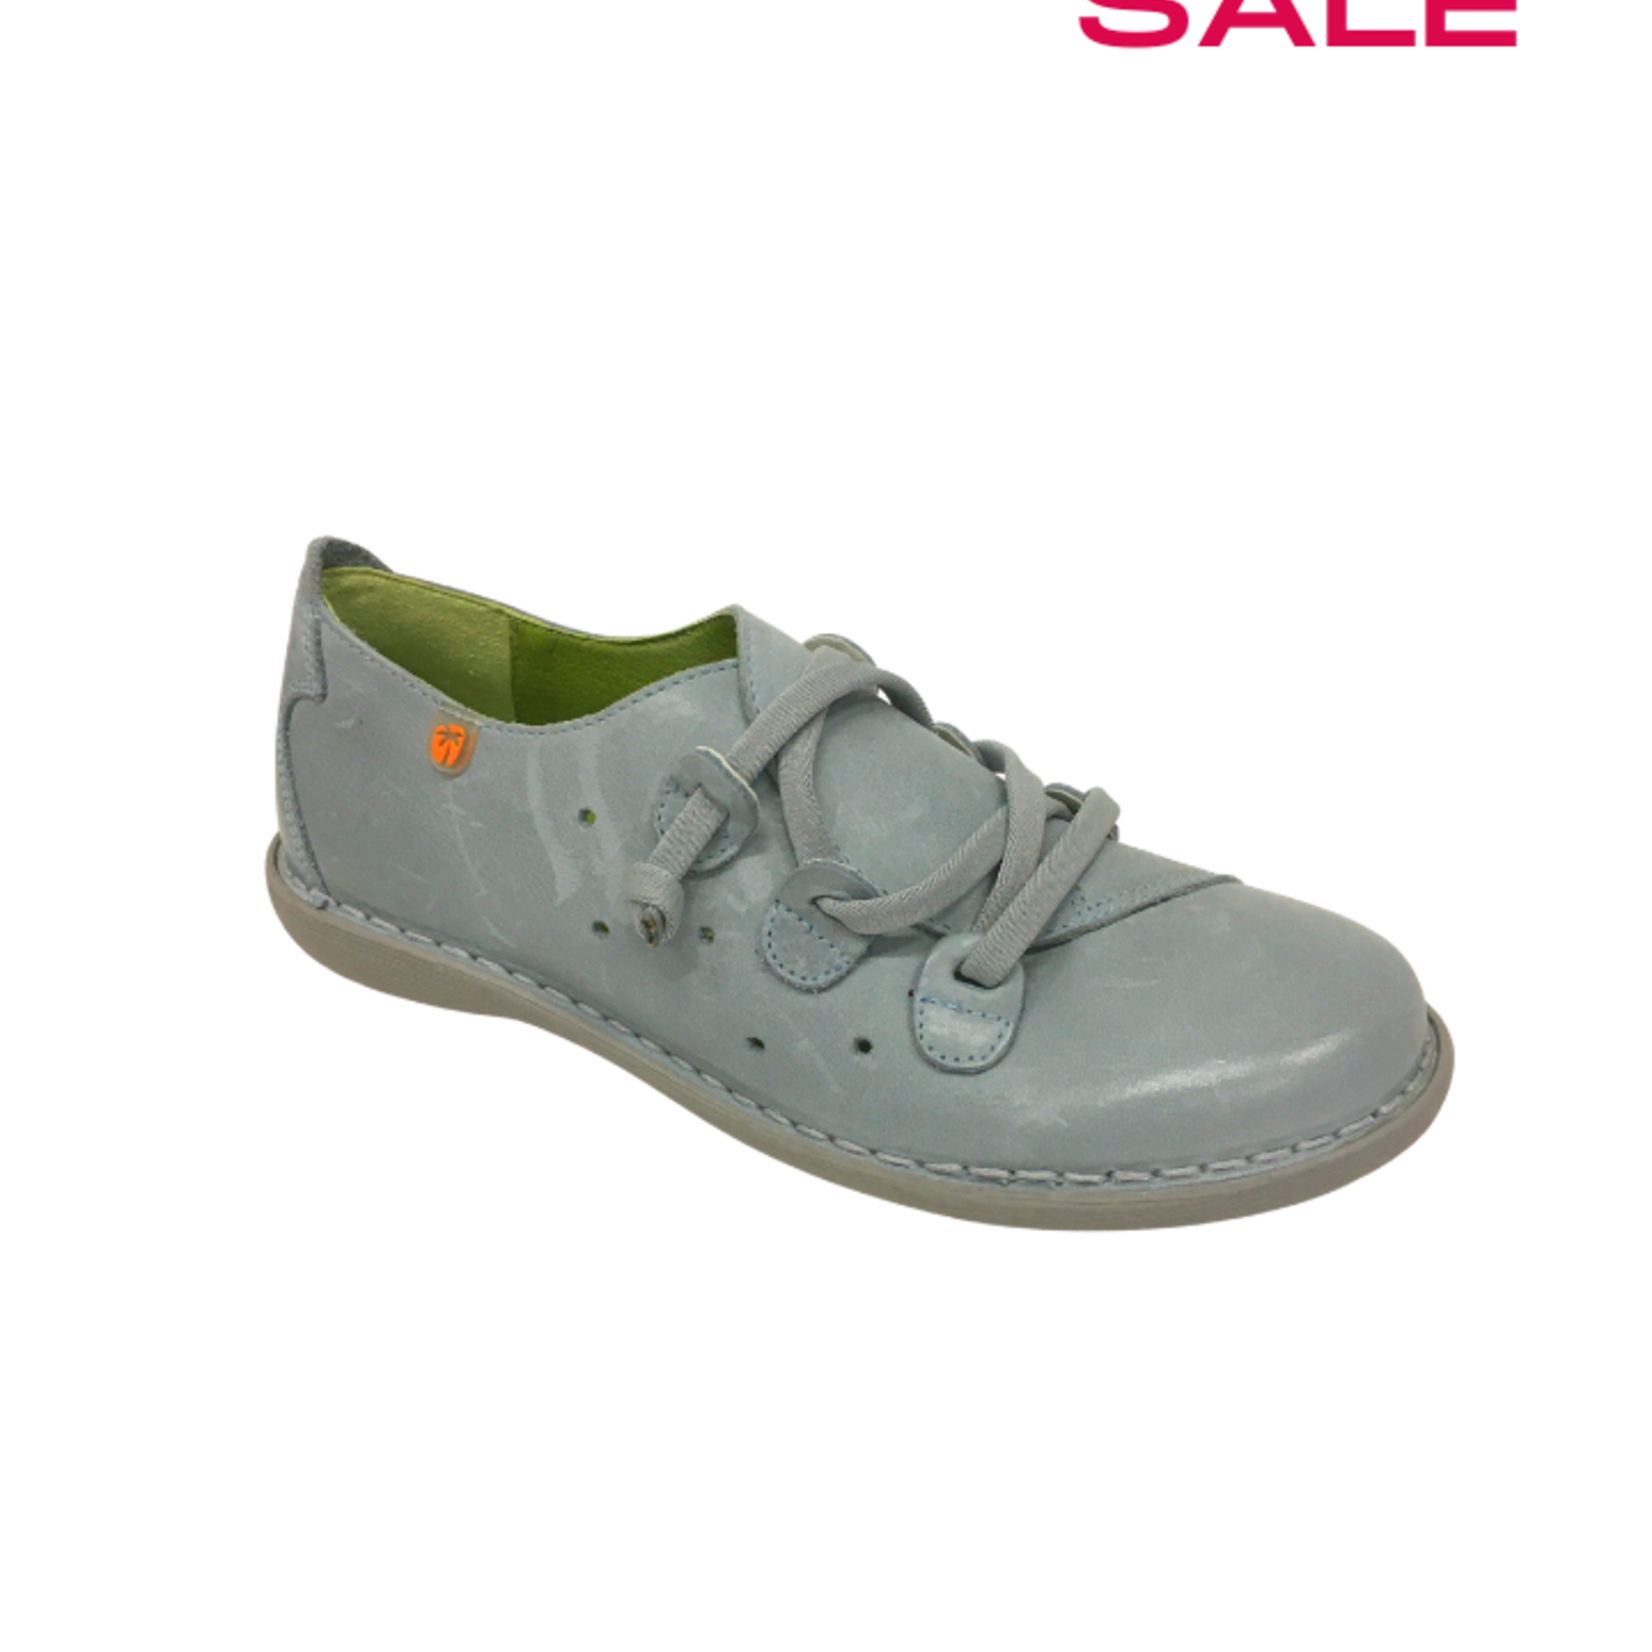 Jungla 6023 sale only size 36